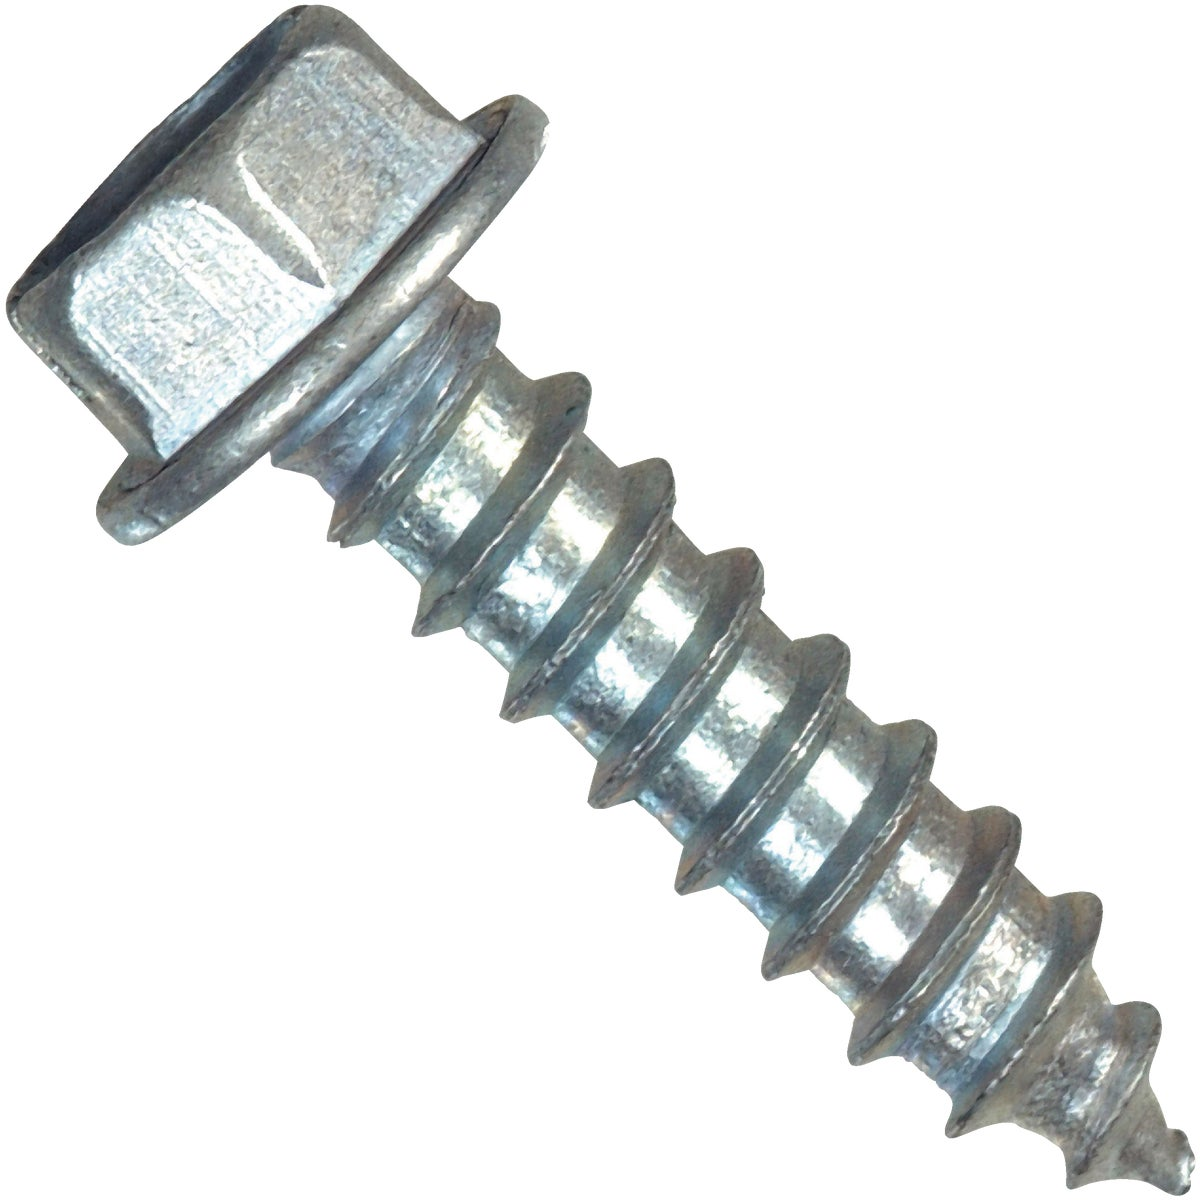 8X1-1/2 HWH ST MTL SCREW - 70286 by Hillman Fastener